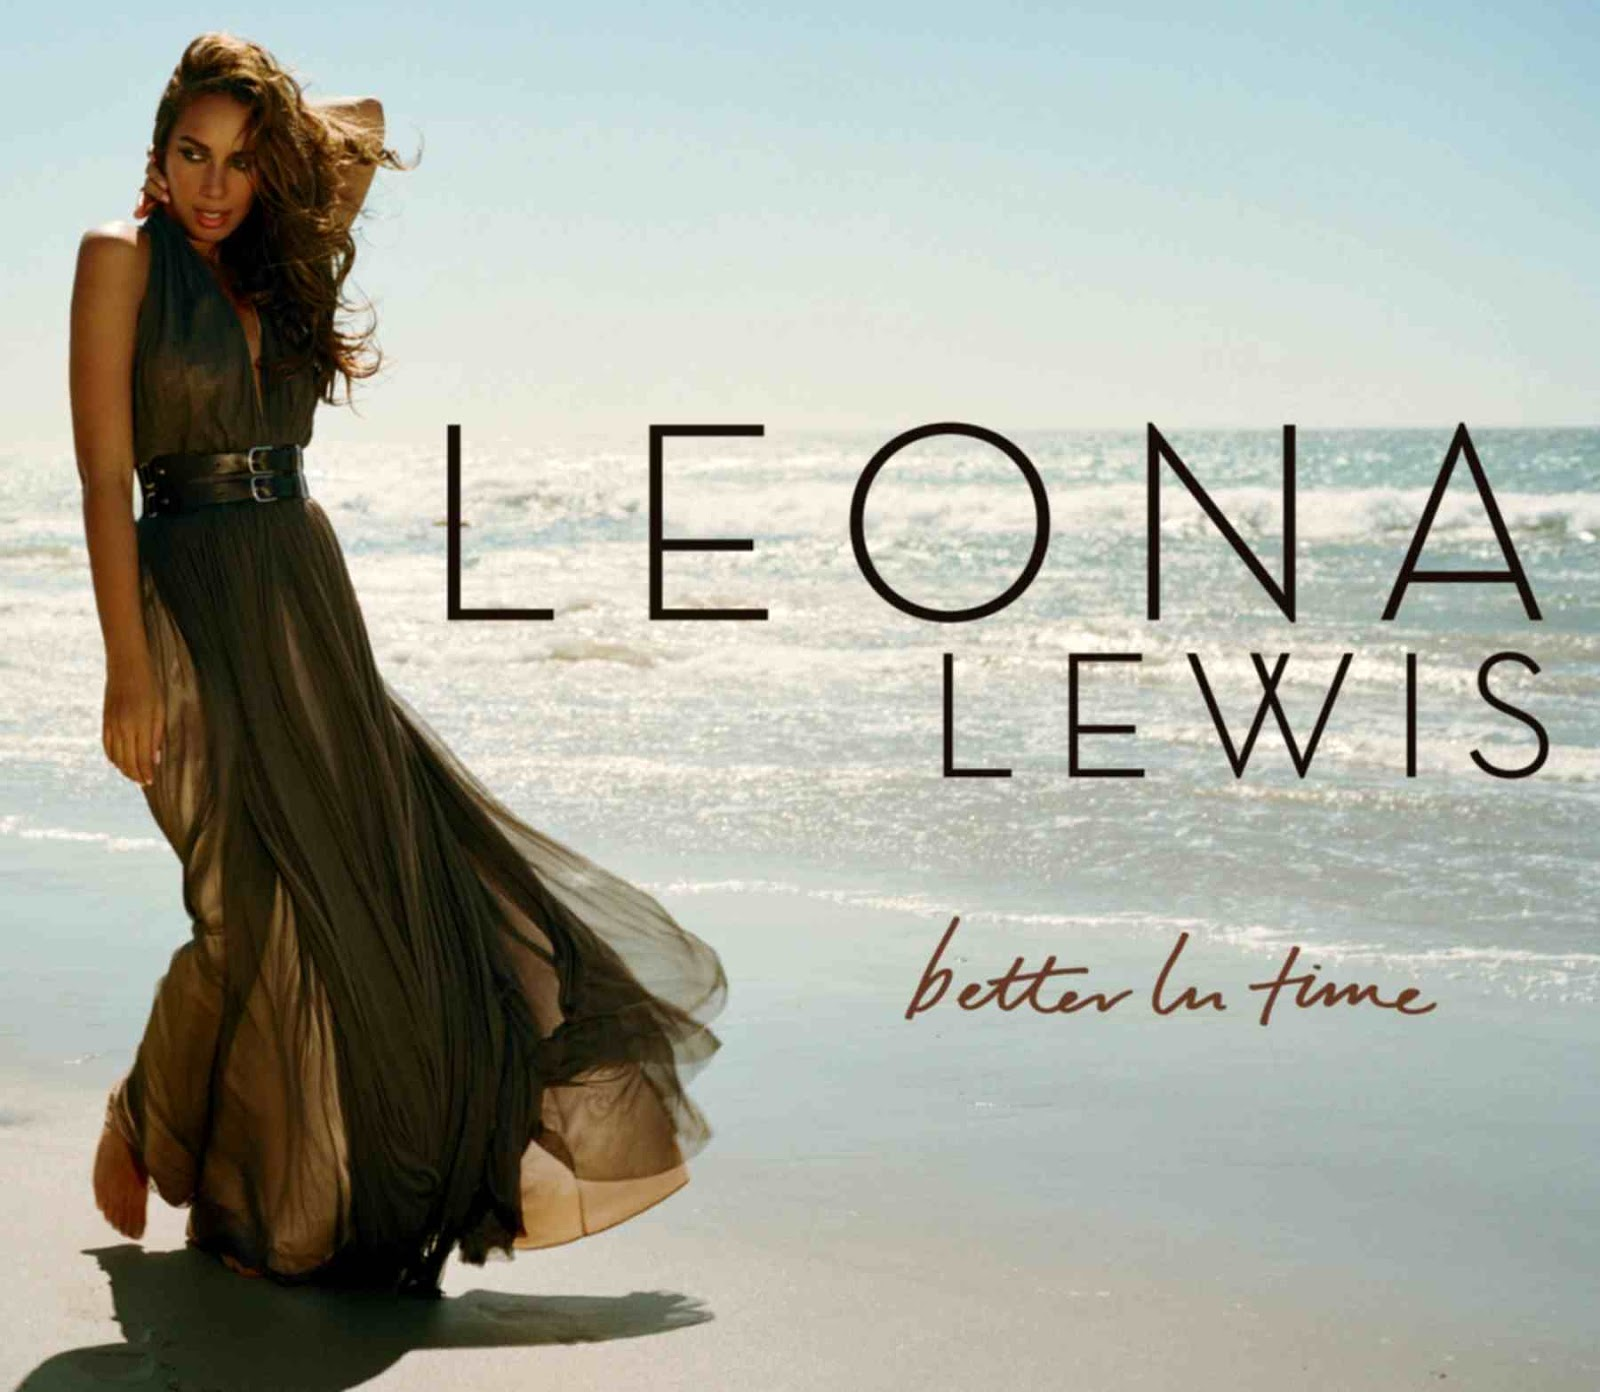 http://3.bp.blogspot.com/-zLLbOdl7mS0/UKqlmHSMF9I/AAAAAAAAWUI/PnlSFqKD5VM/s1600/allcdcovers_leona_lewis_better_in_time_official_sport_relief_single_2008_2008_retail_cd-front.jpg